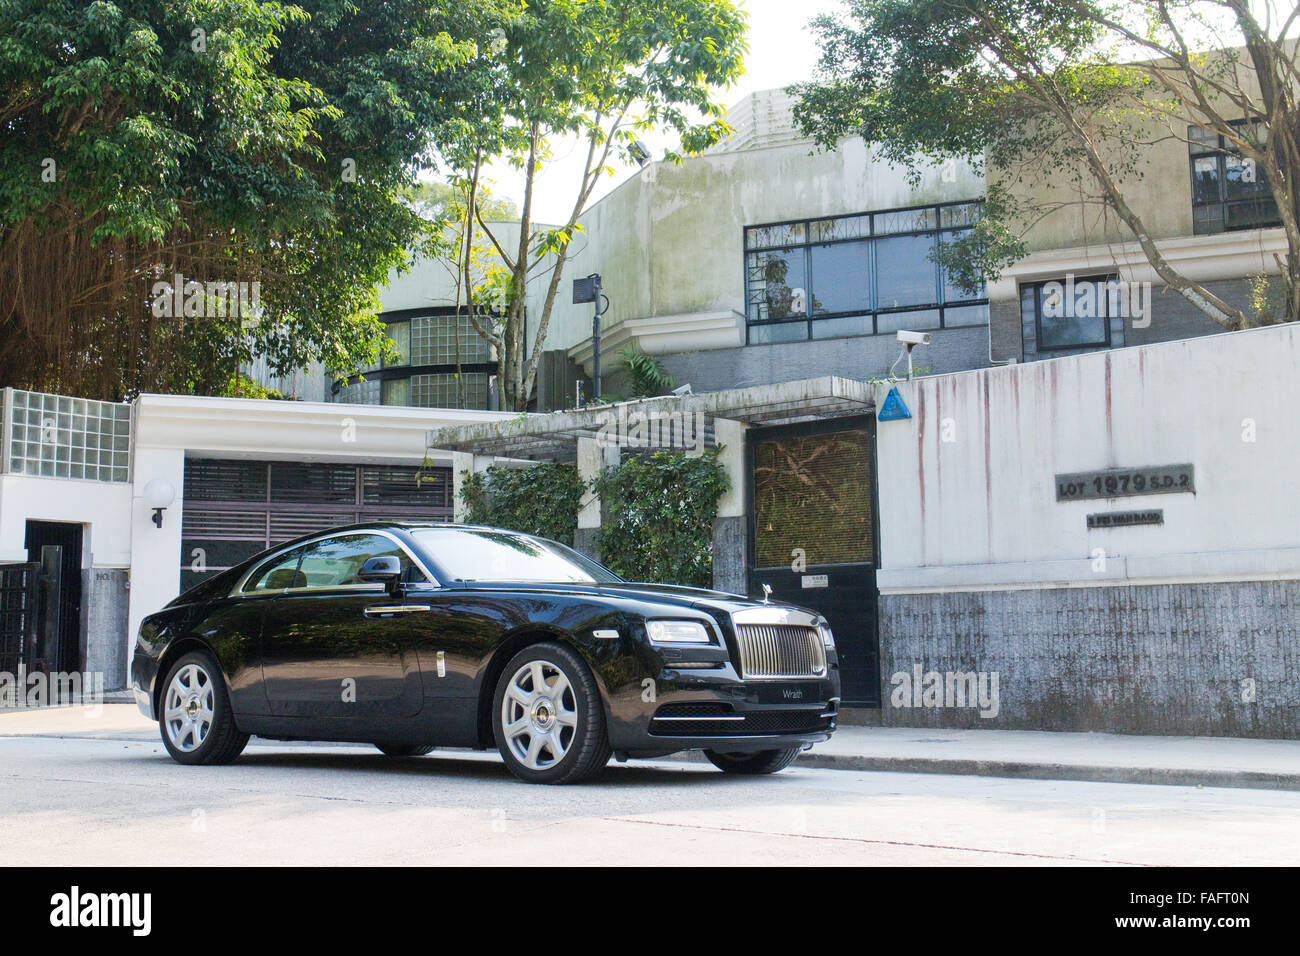 Hong Kong, China Jan 27, 2014 : Rolls-Royce Wraith Top Class Sedan 2014 Model test drive on March 27 2014 in Hong Stock Photo